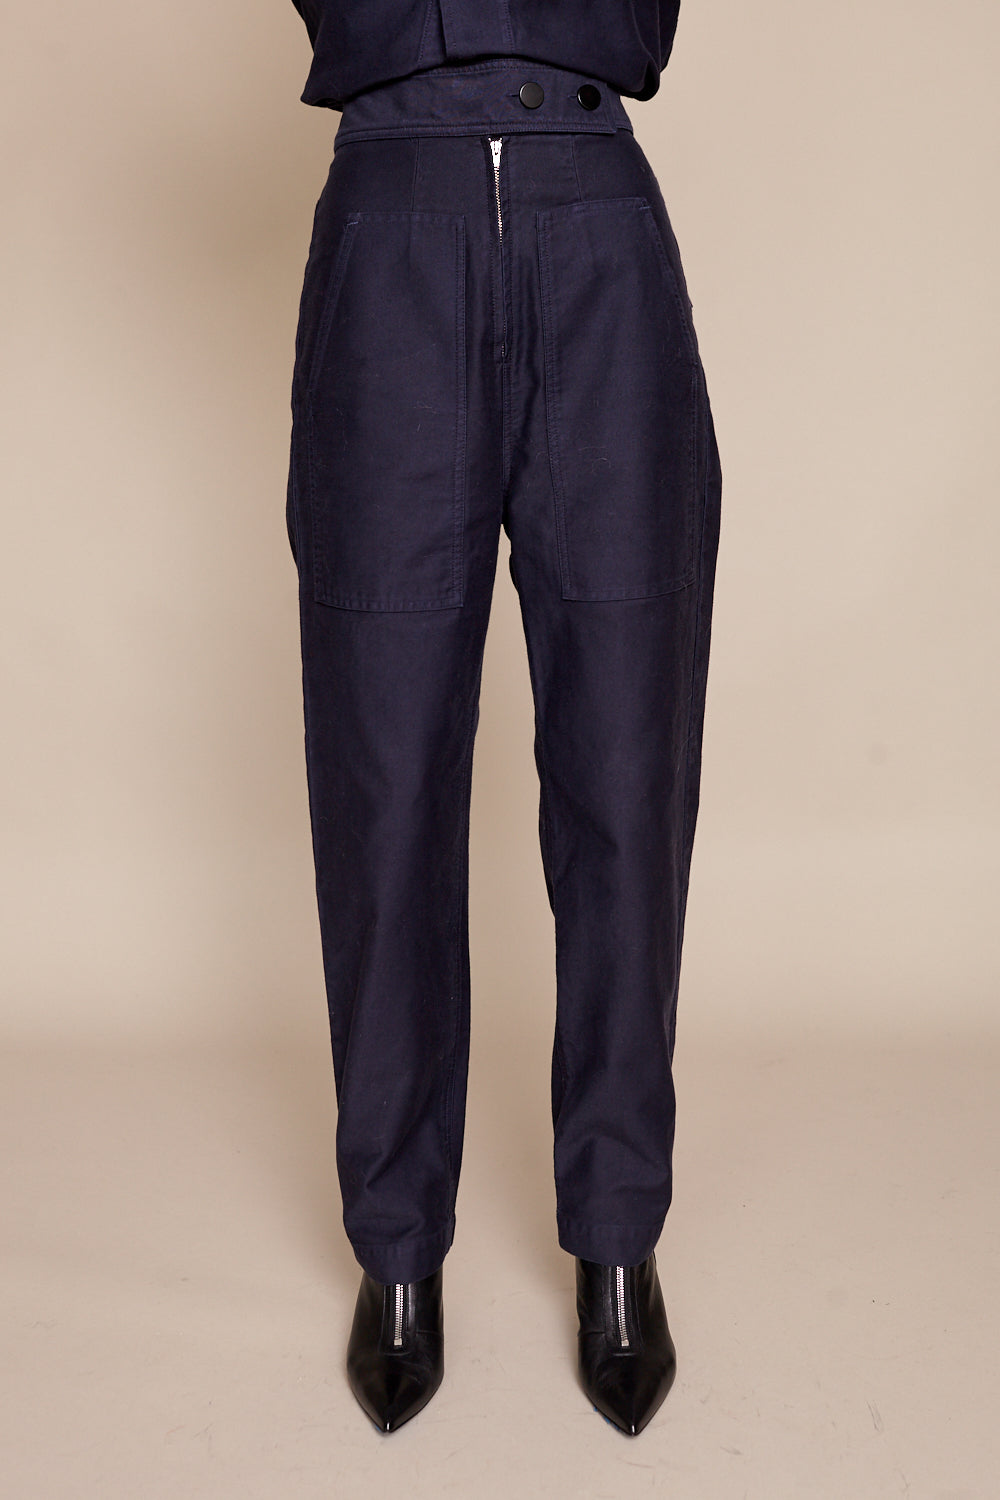 Emi Pants in Navy Twill